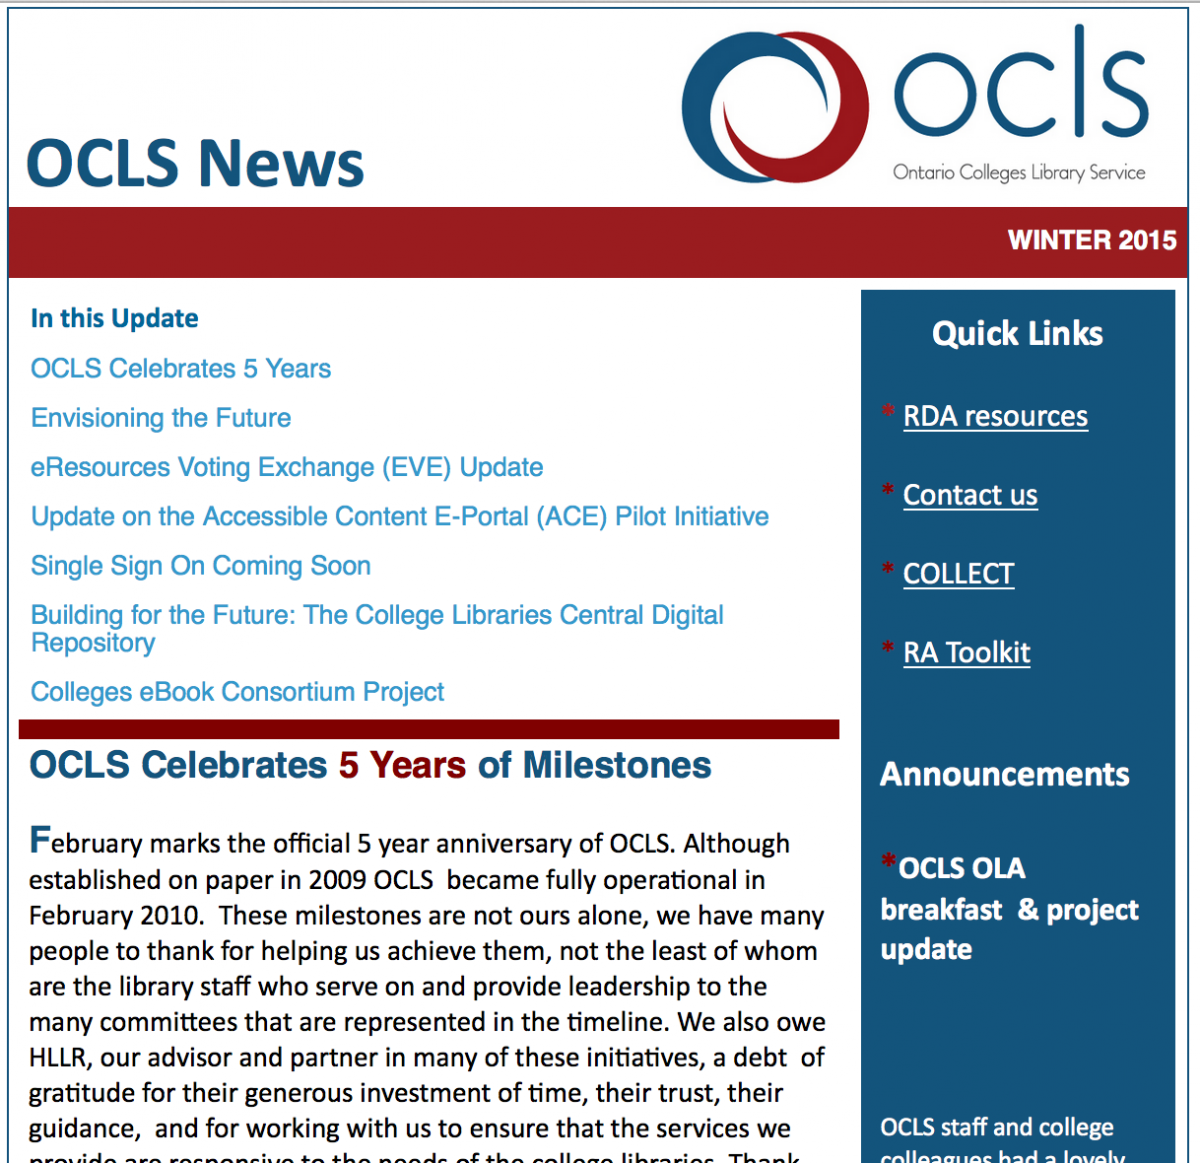 OCLS News - Winter 2015